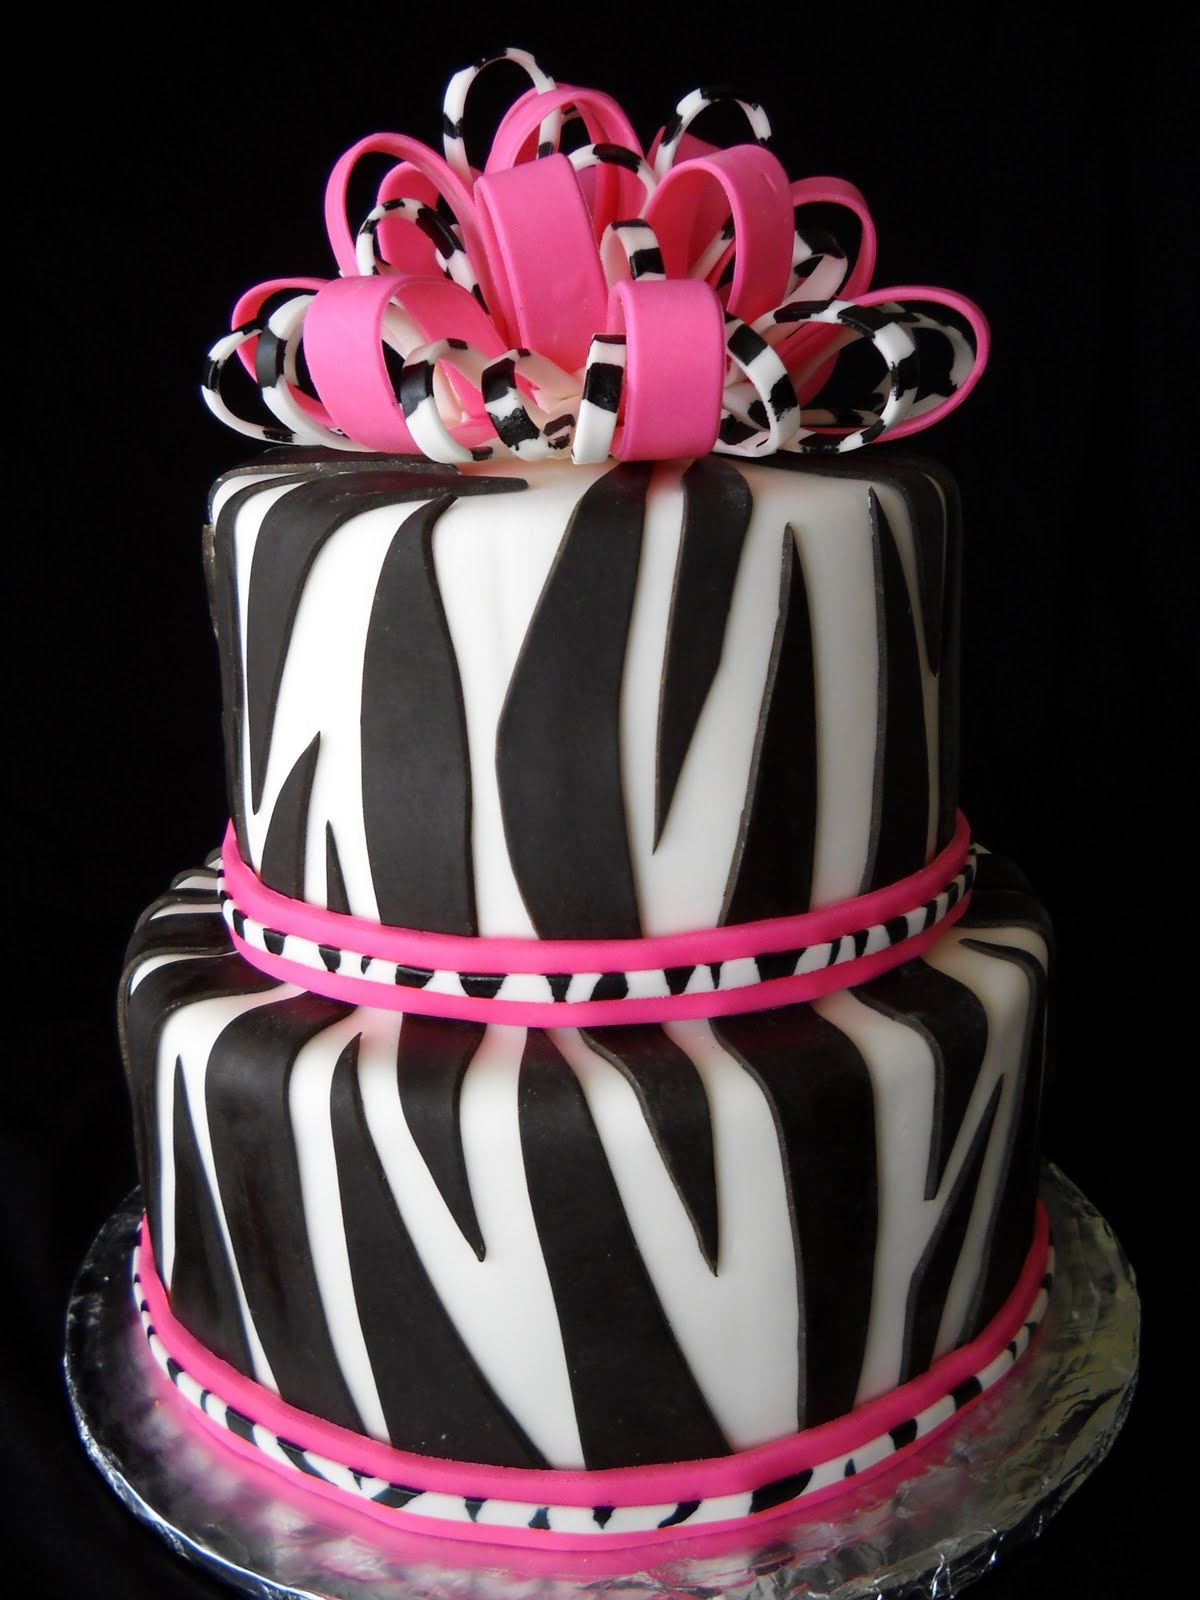 Cake With Zebra Design : Violet s Custom Cakes: March 2010